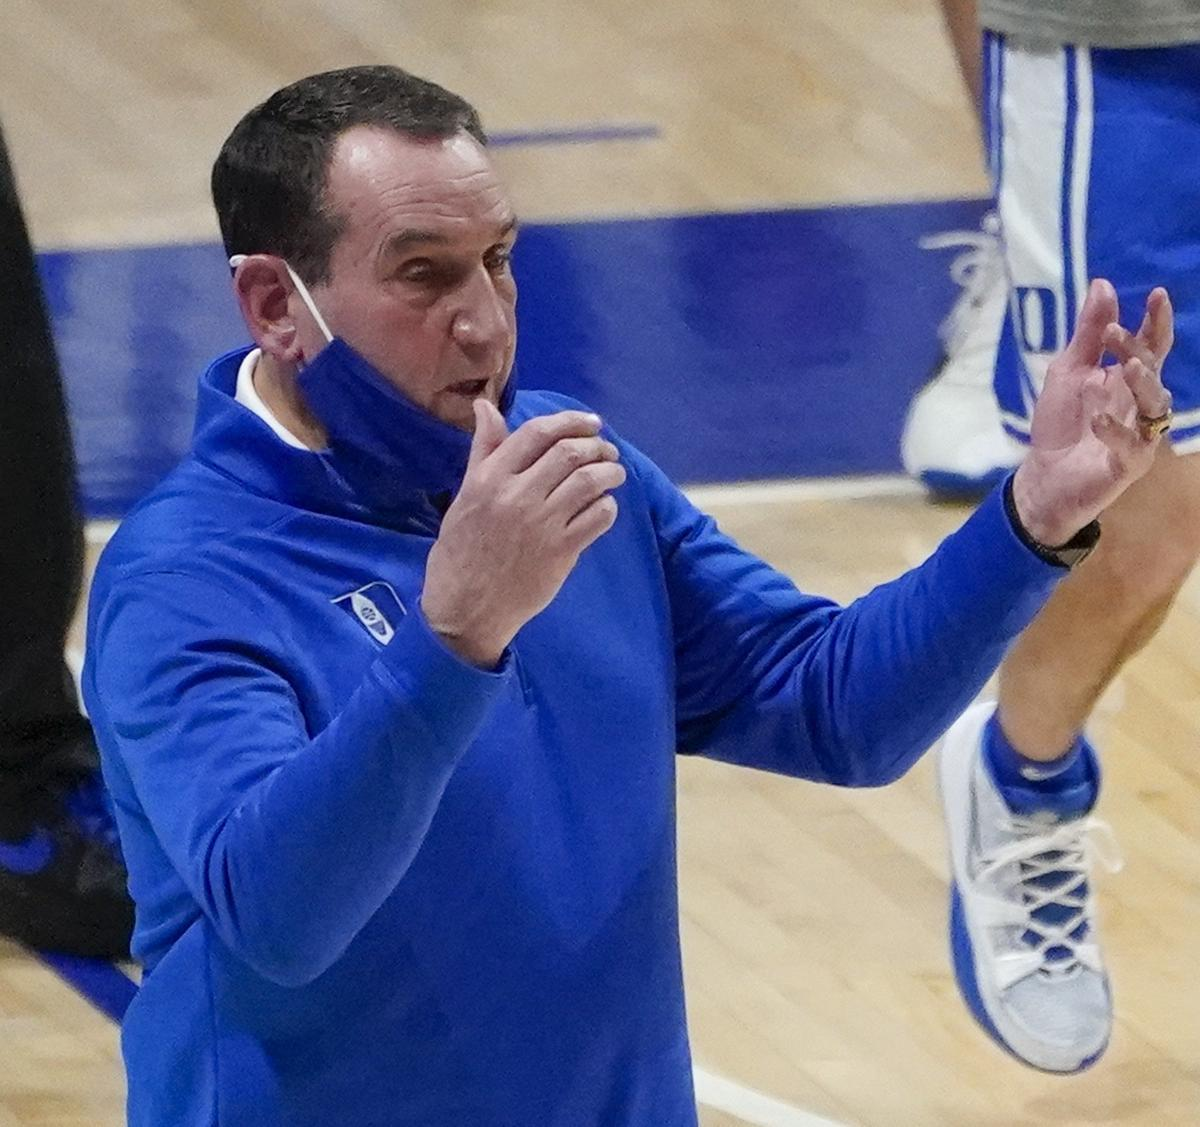 Duke's Mike Krzyzewski Takes Exception to Student Reporter's Question After Loss